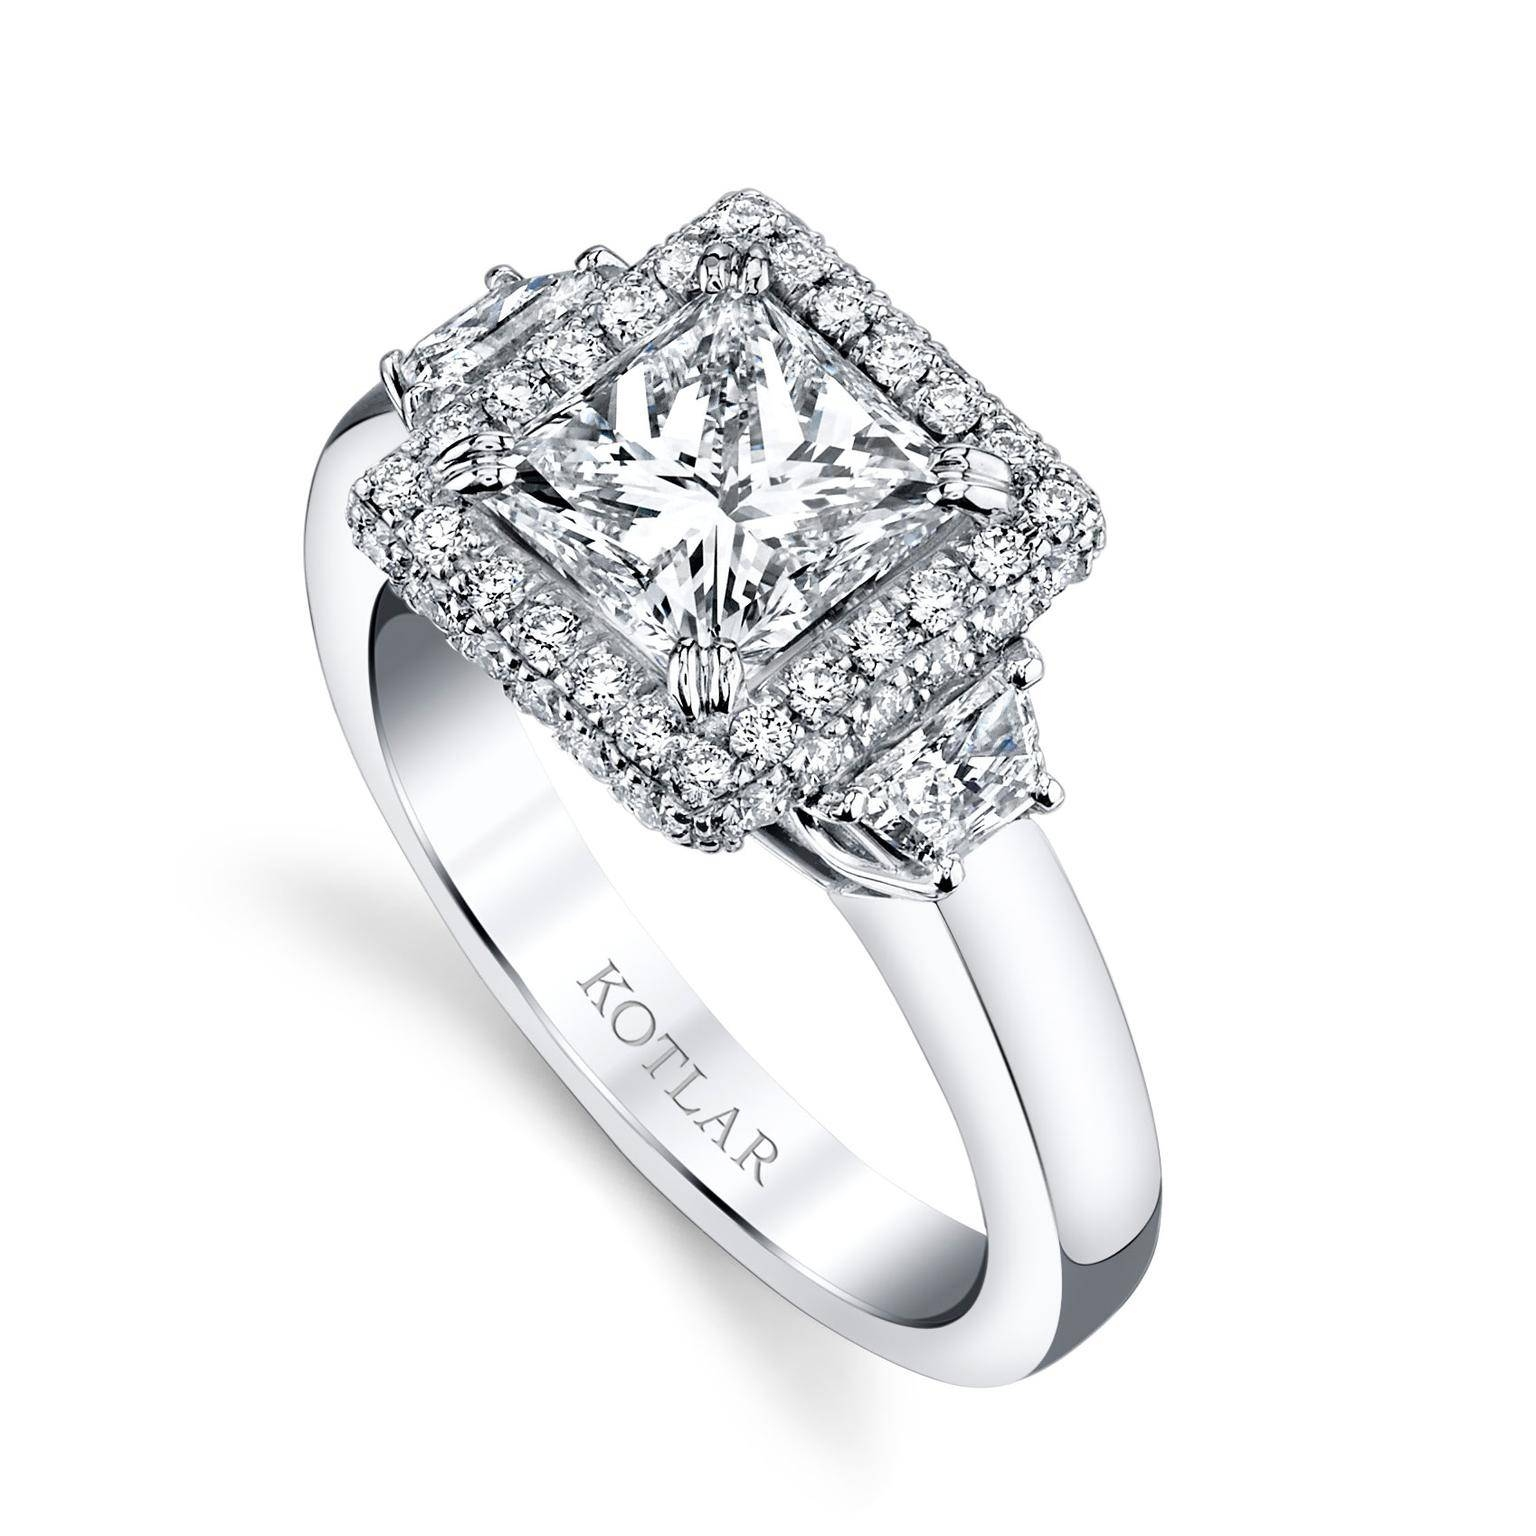 The Romantic Appeal Of Princess Cut Engagement Rings | The Regarding Princess Shaped Engagement Rings (View 12 of 15)